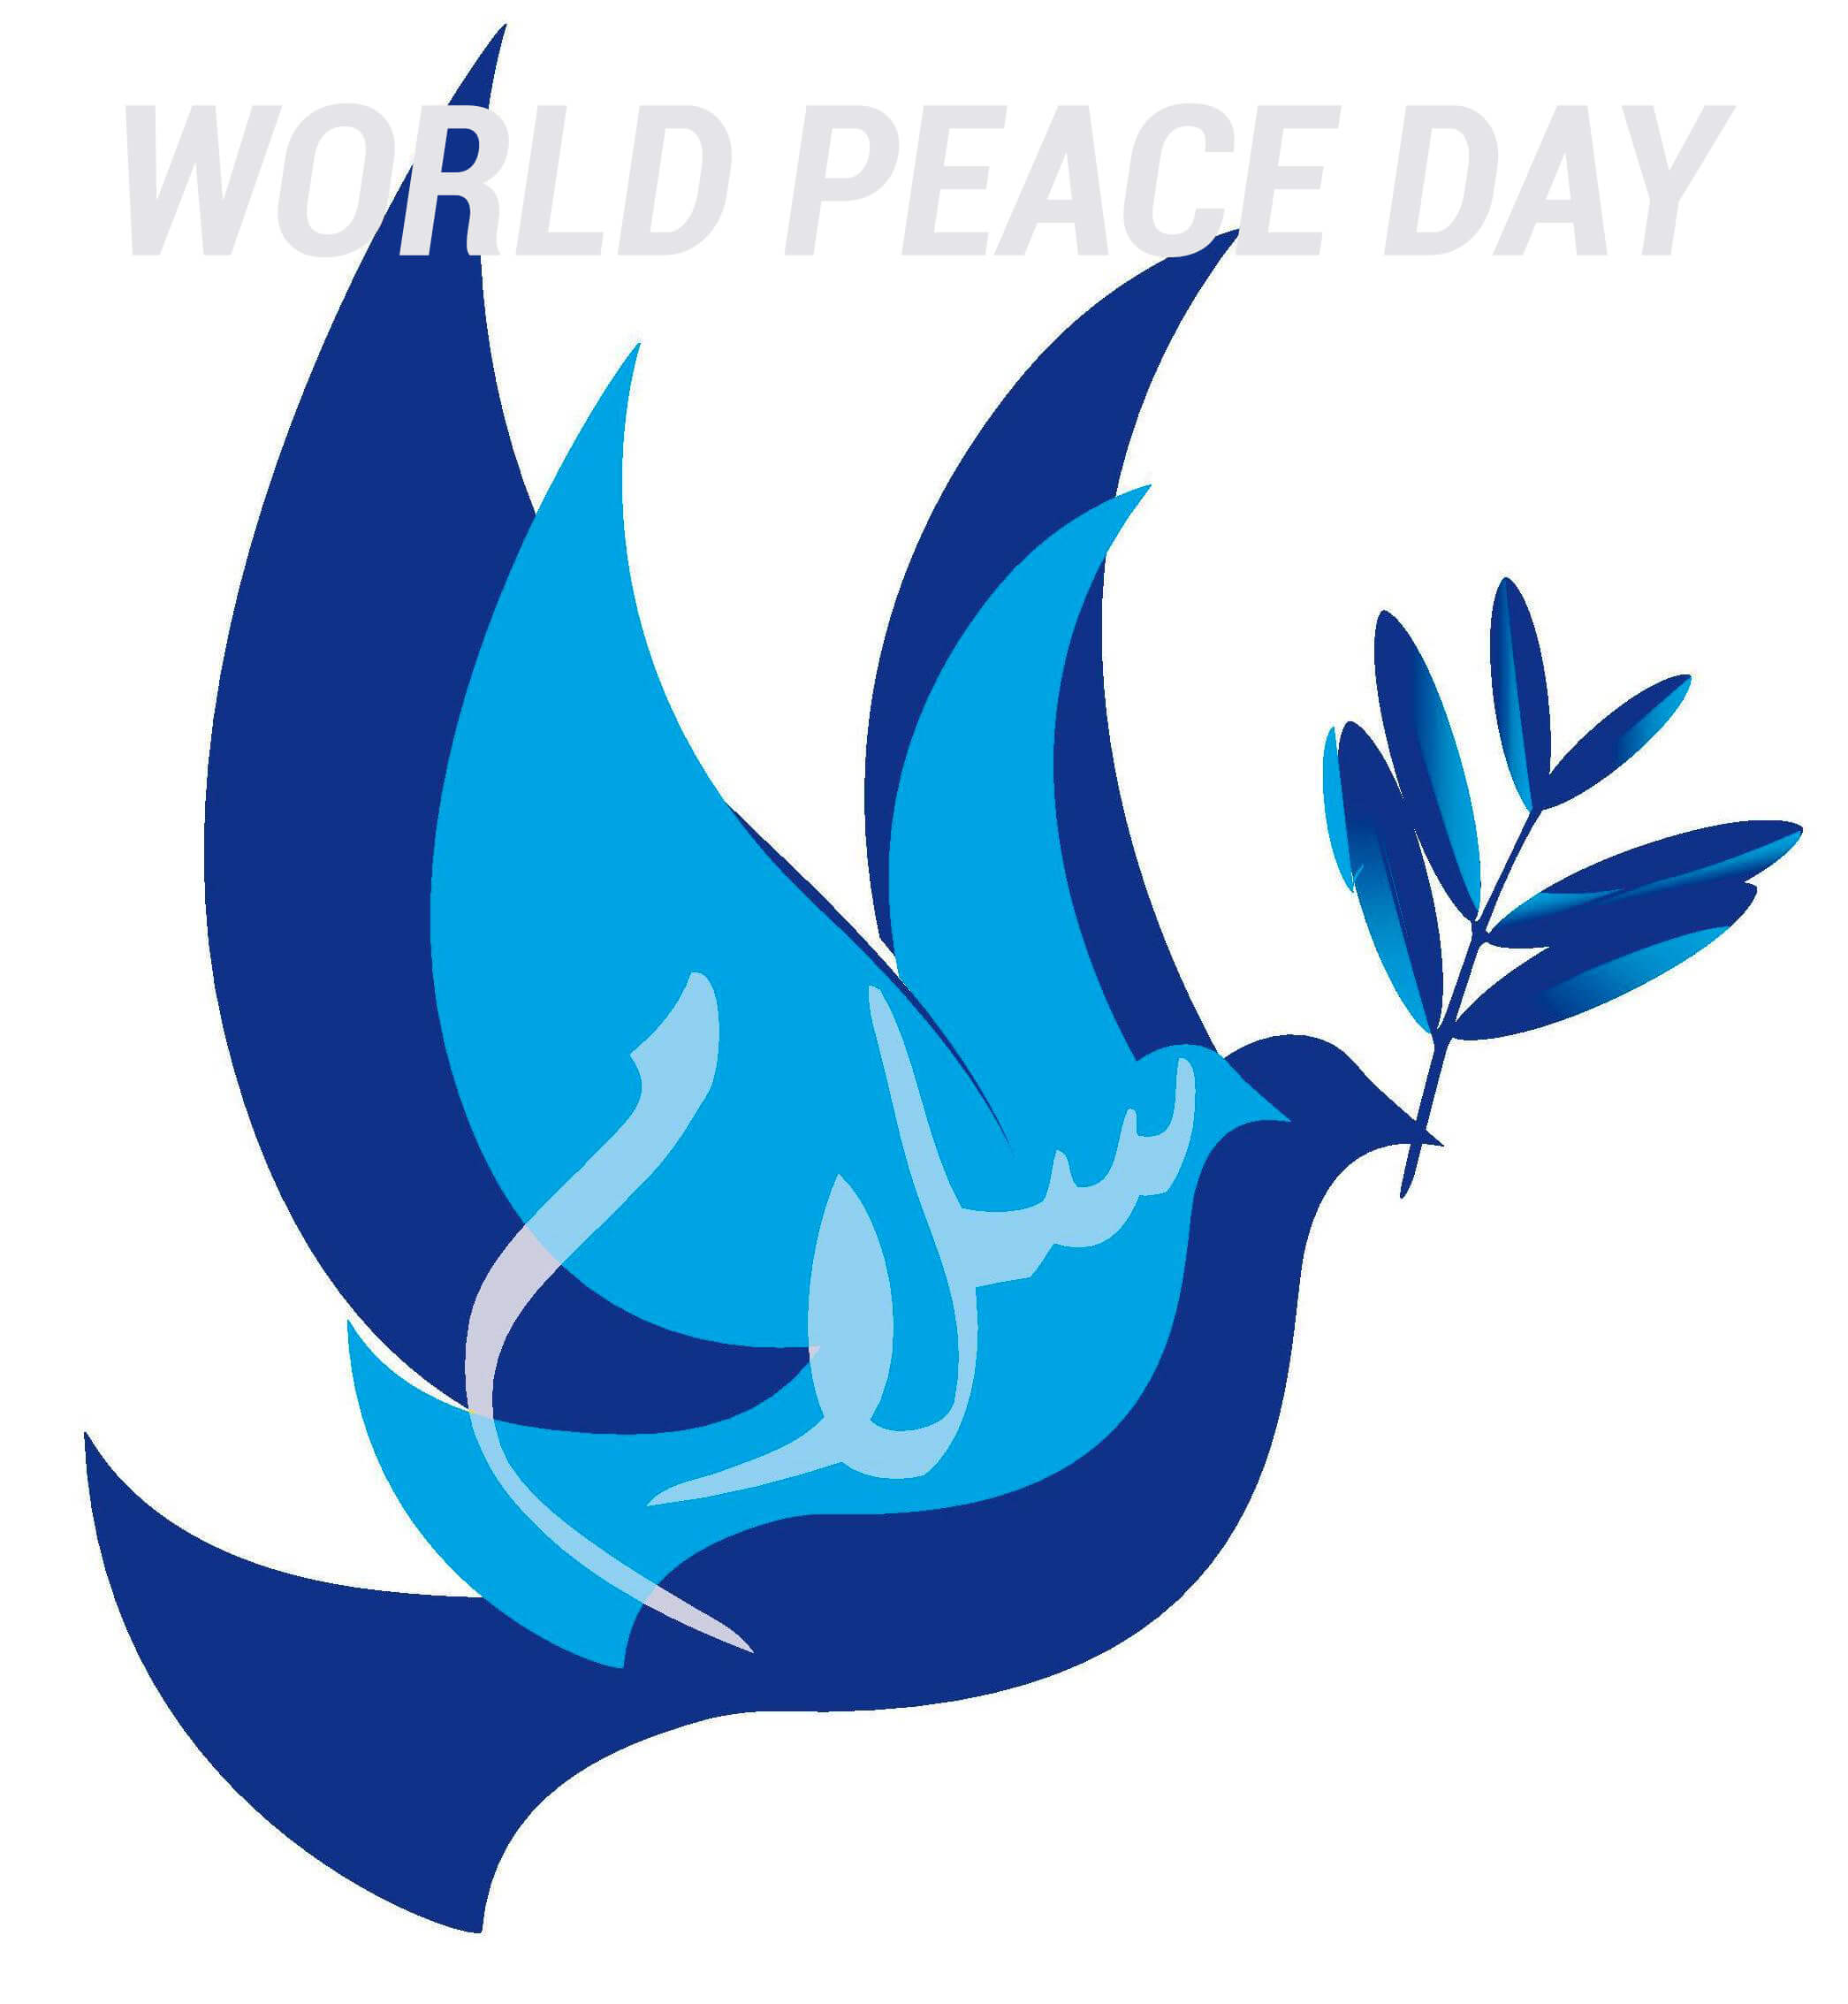 world peace day wallpapers free download happy valentine's day clip art vintage happy valentine's day clip art images